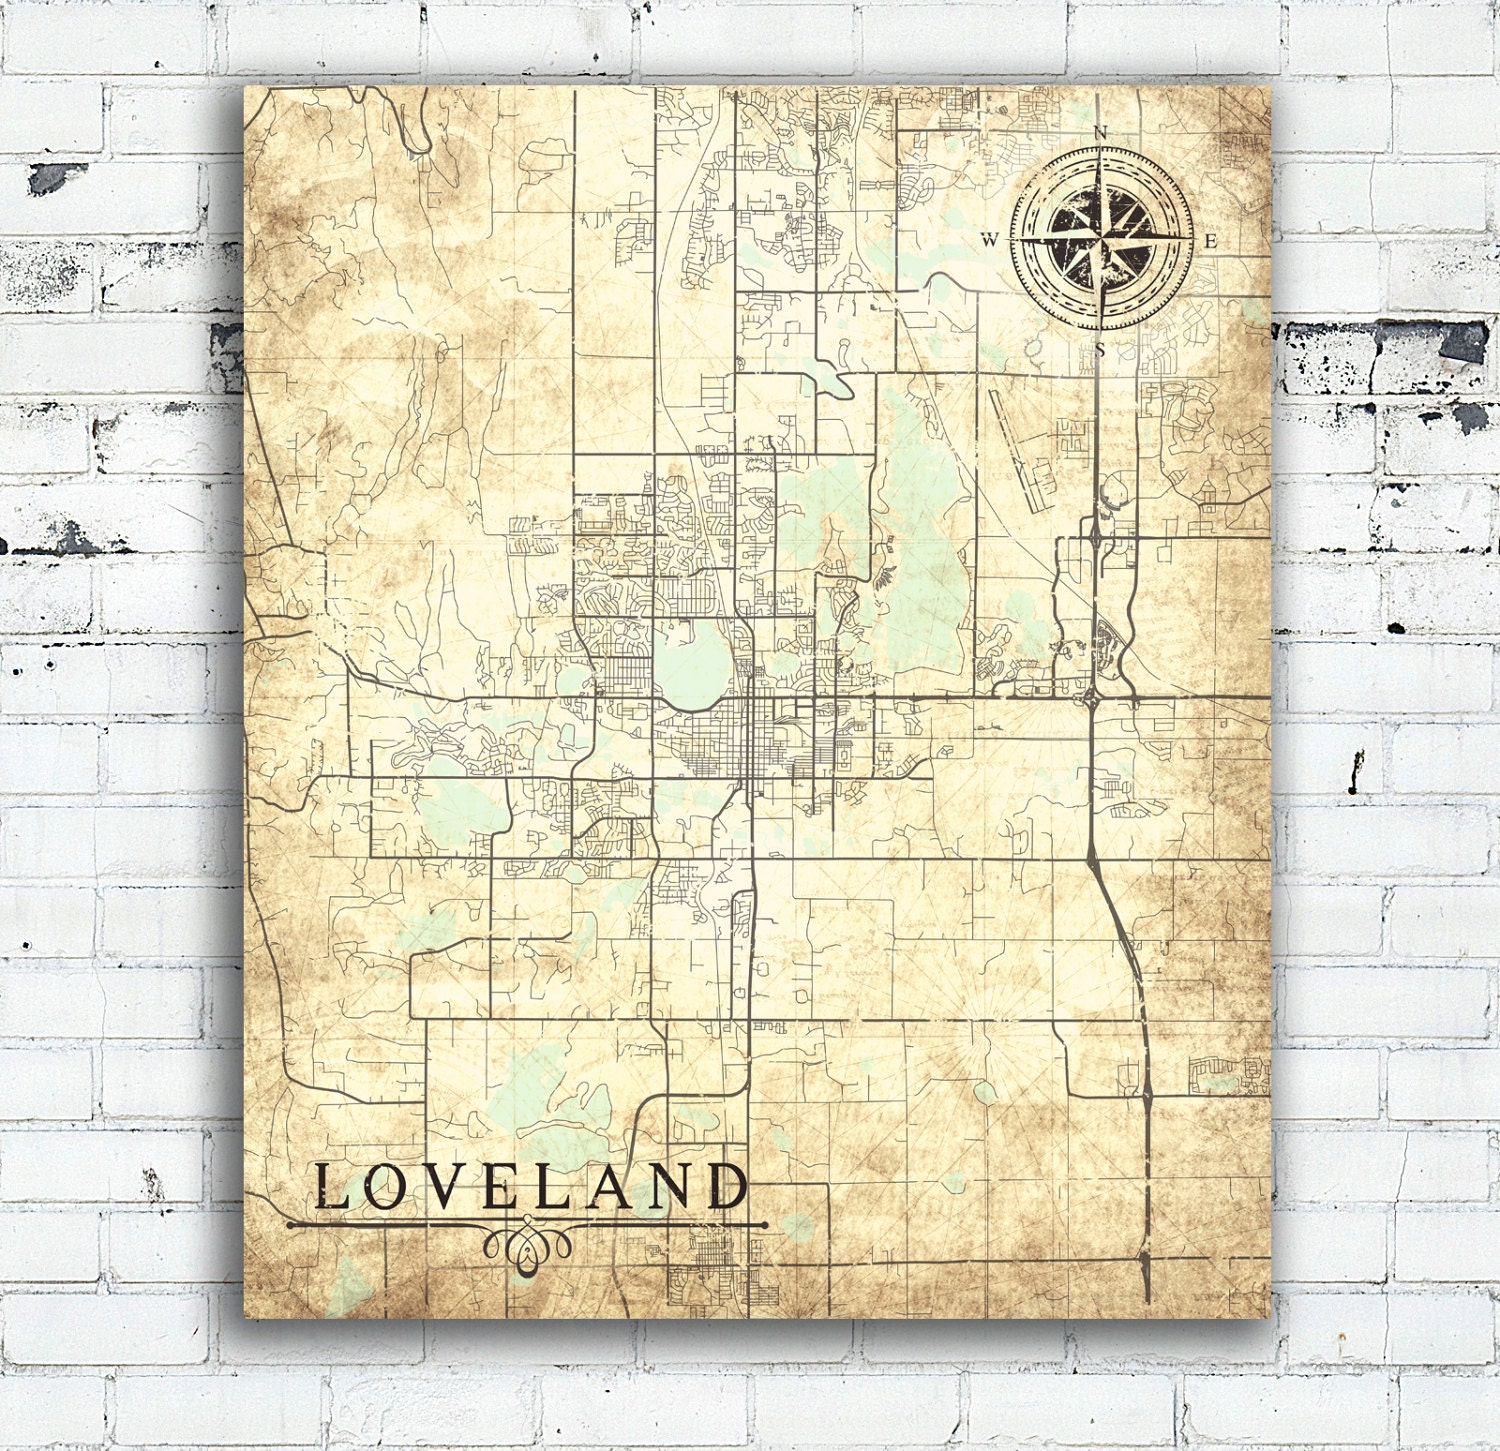 LOVELAND CO Canvas Print Loveland Co Colorado Town City Plan Vintage ...